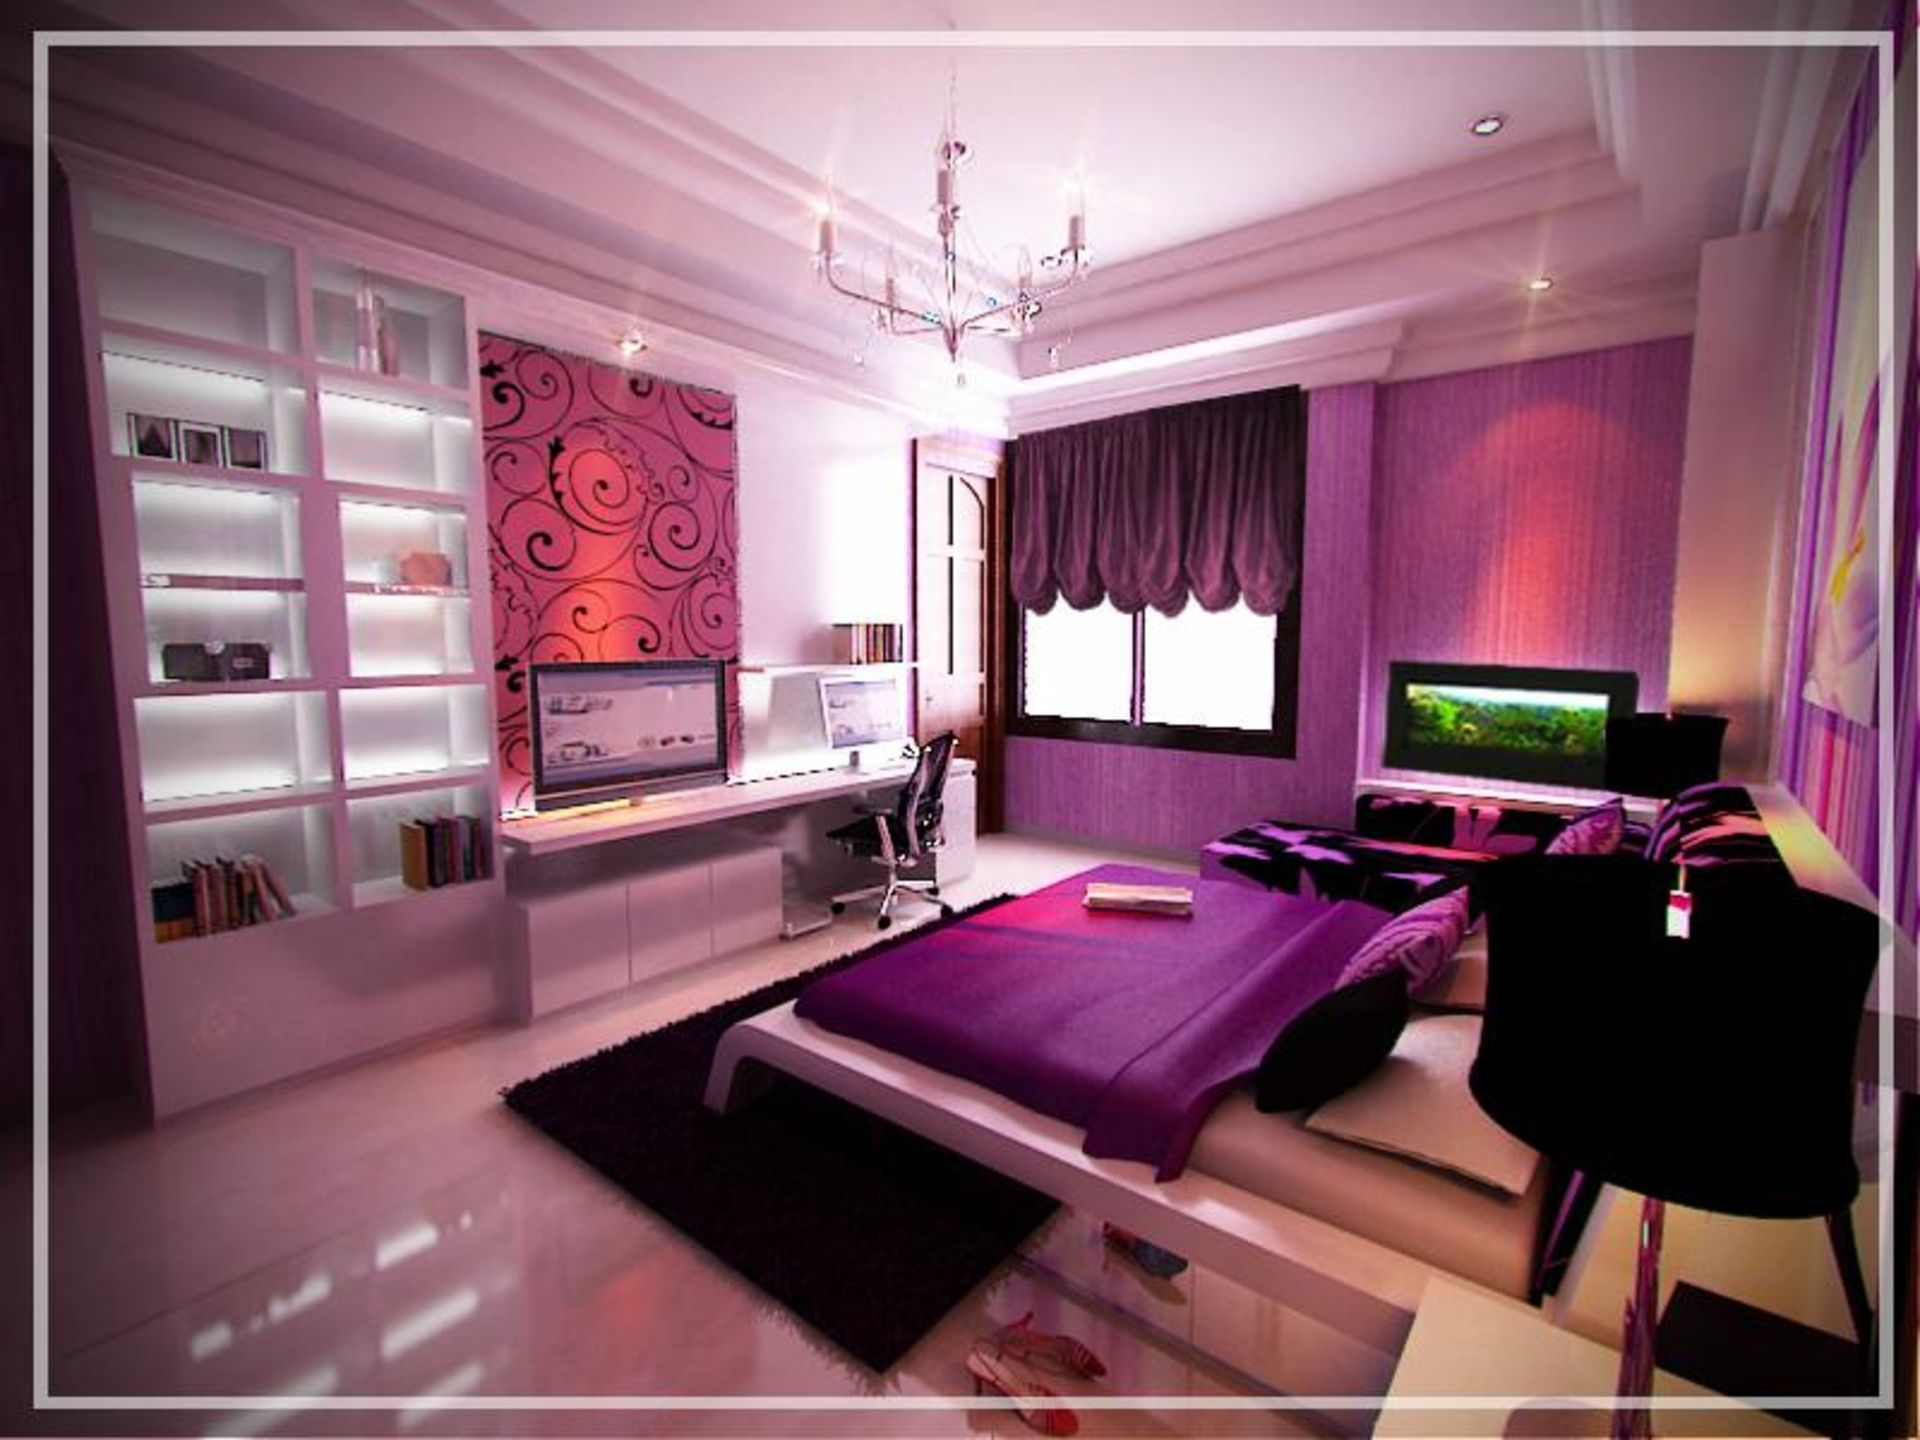 Best Images About Interior Design Ideas On Pinterest Modern - Great bedroom design ideas